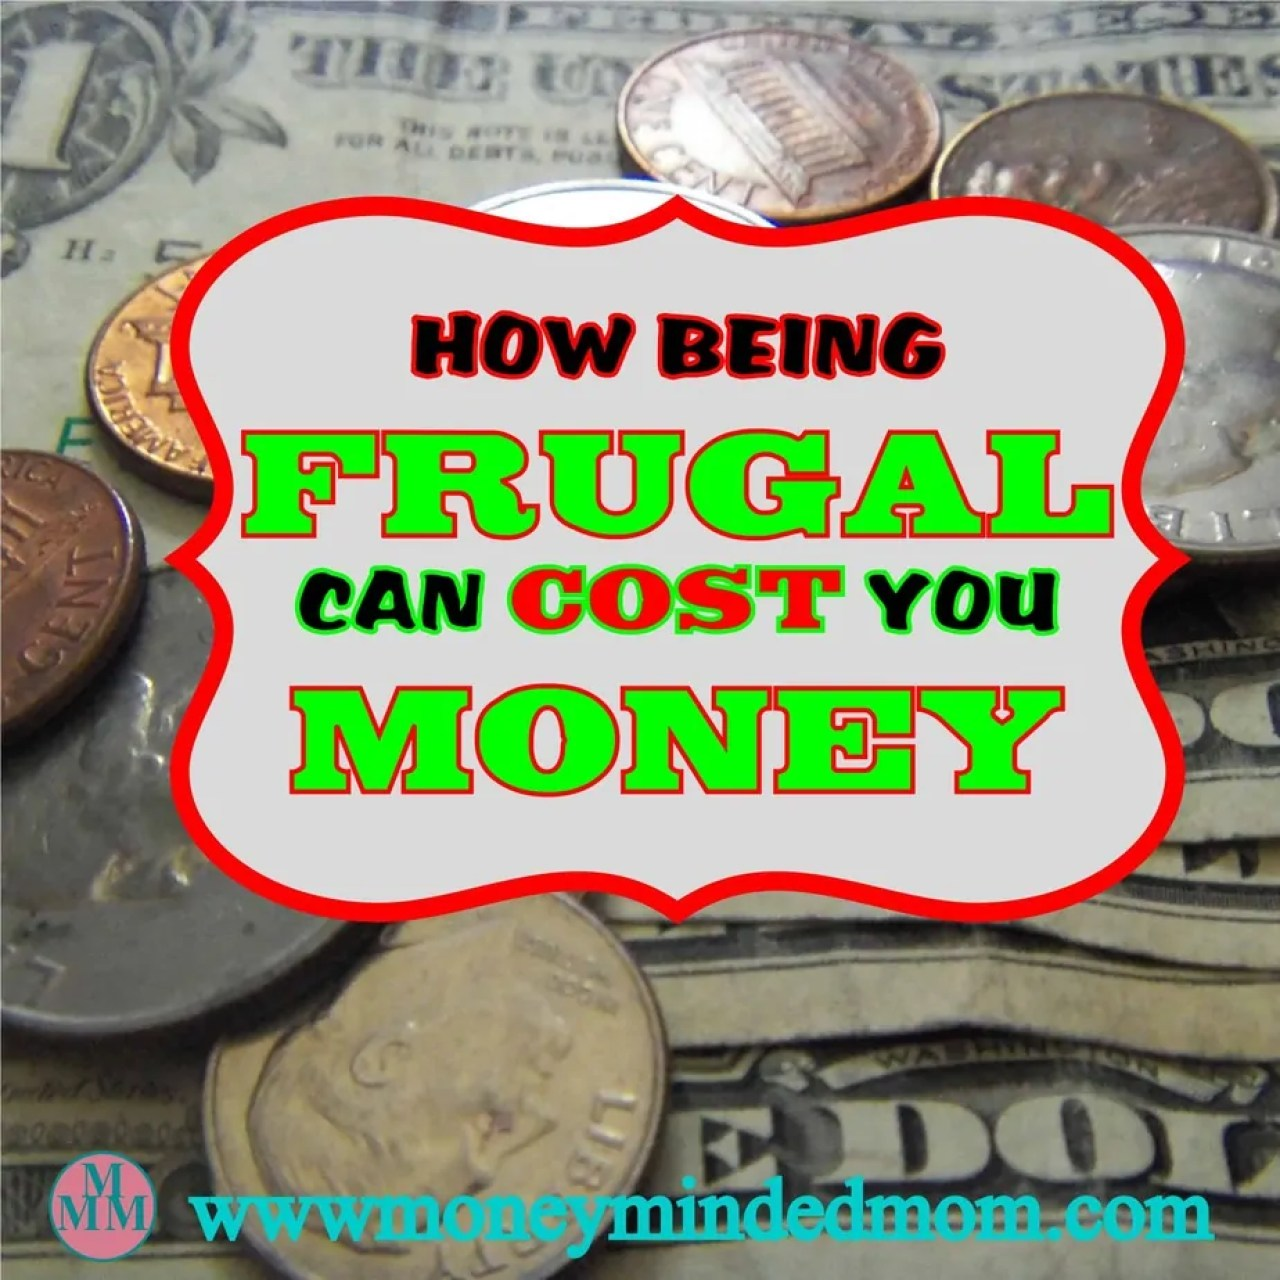 How Being Frugal Can Cost You Money